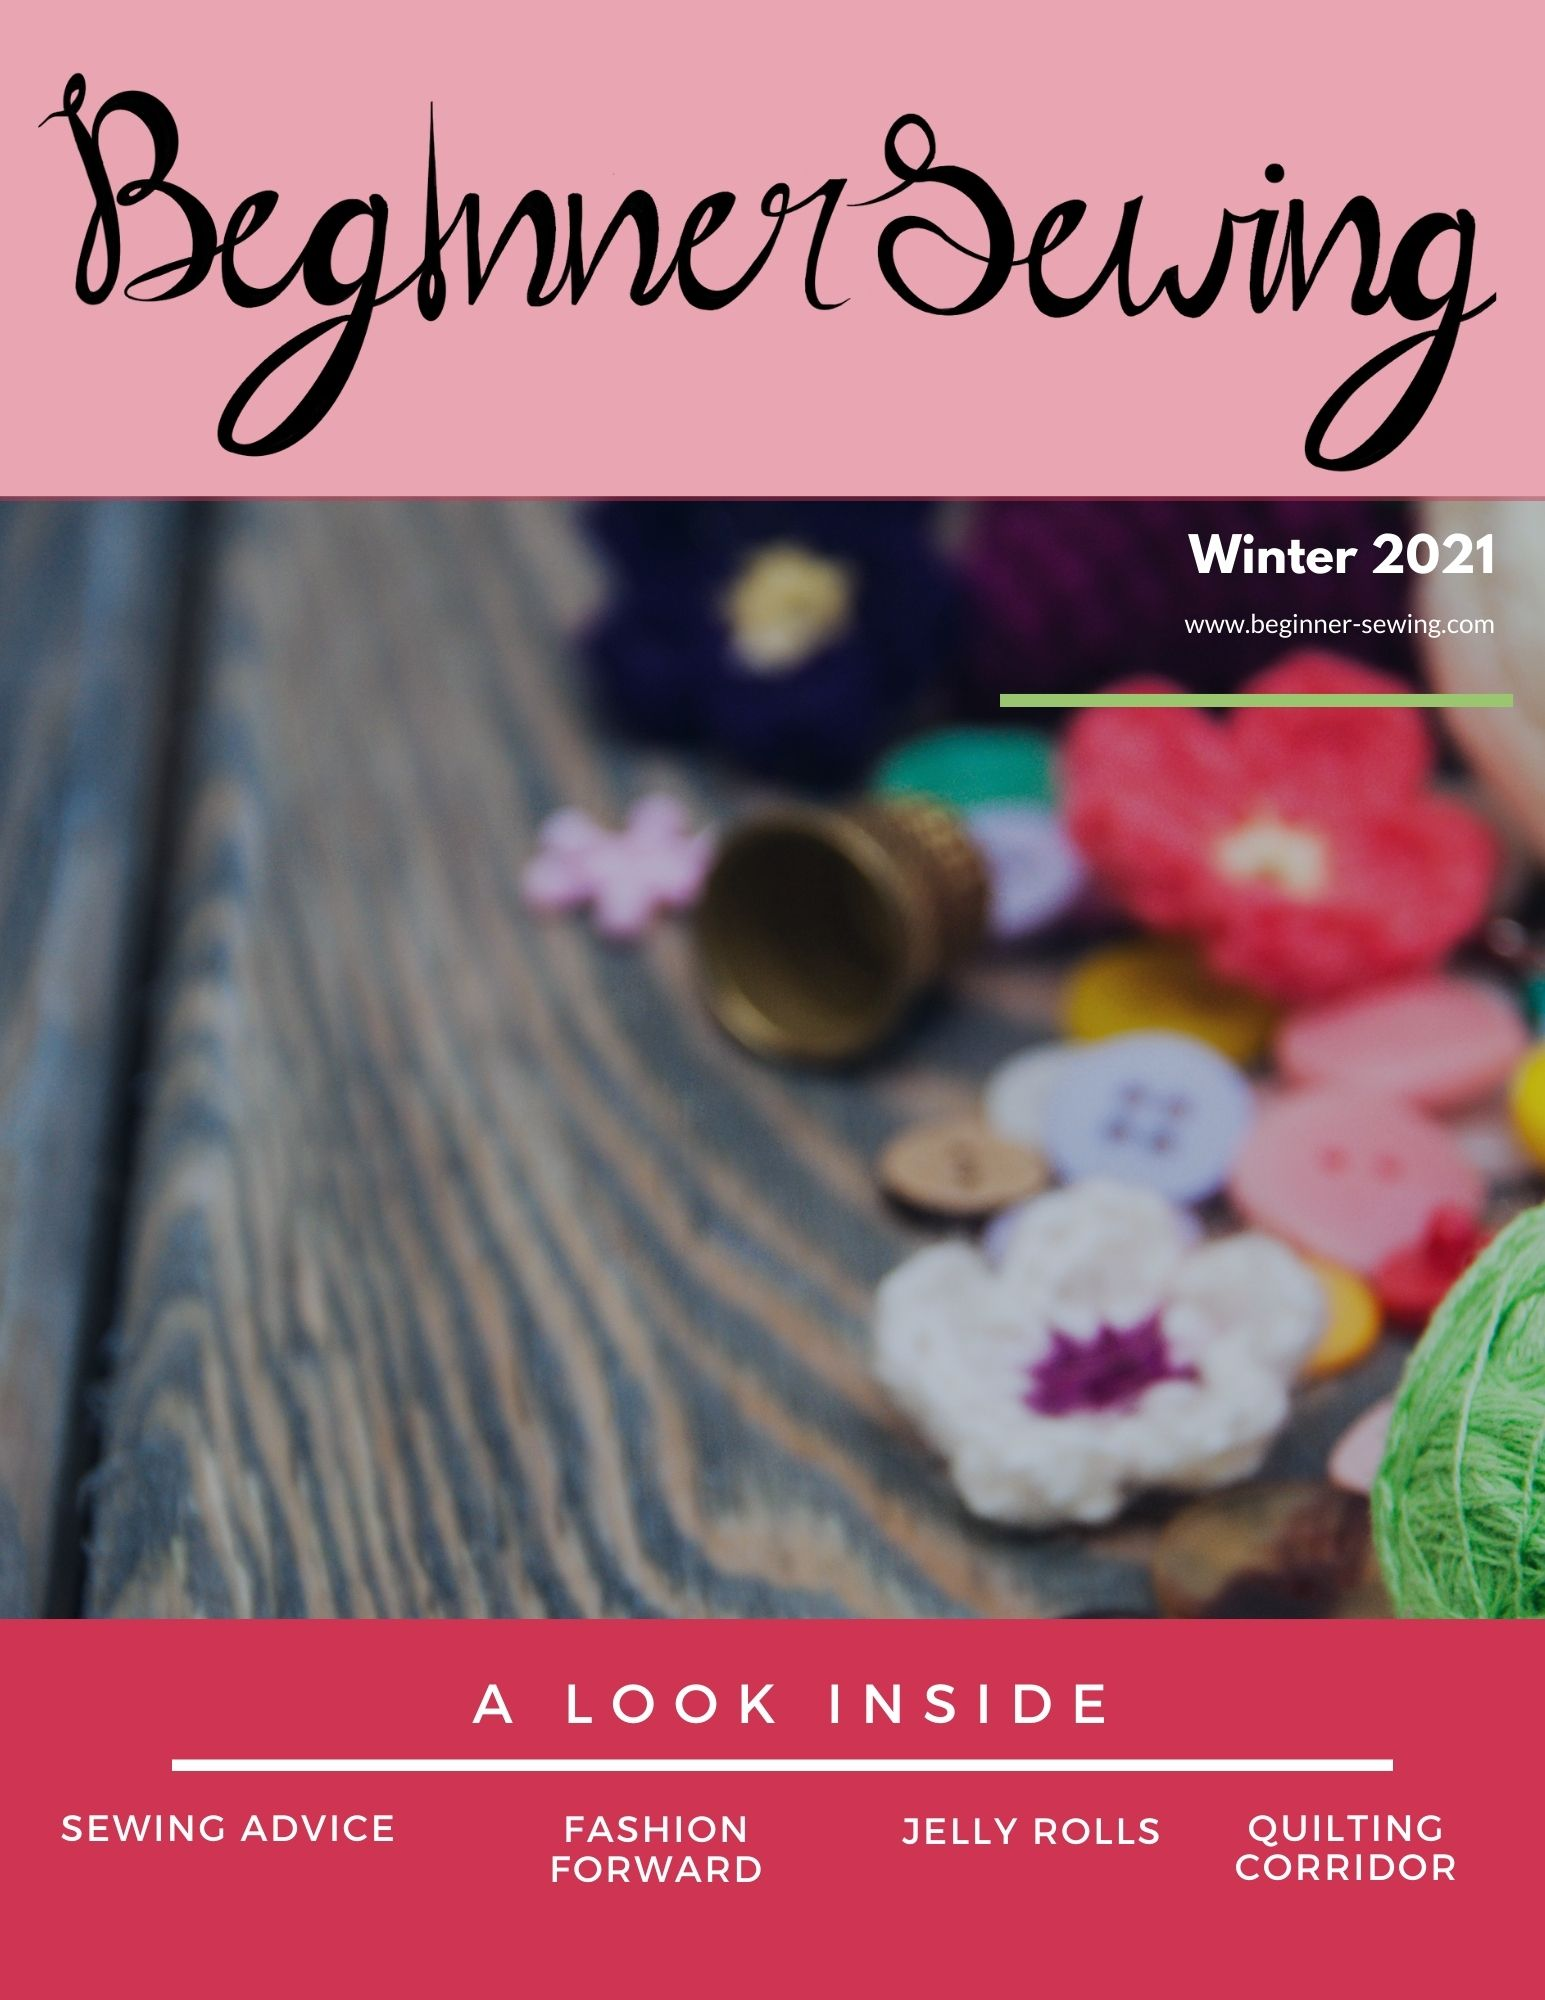 The Winter 2021 Issue of Beg!nner Sewing is Ready!